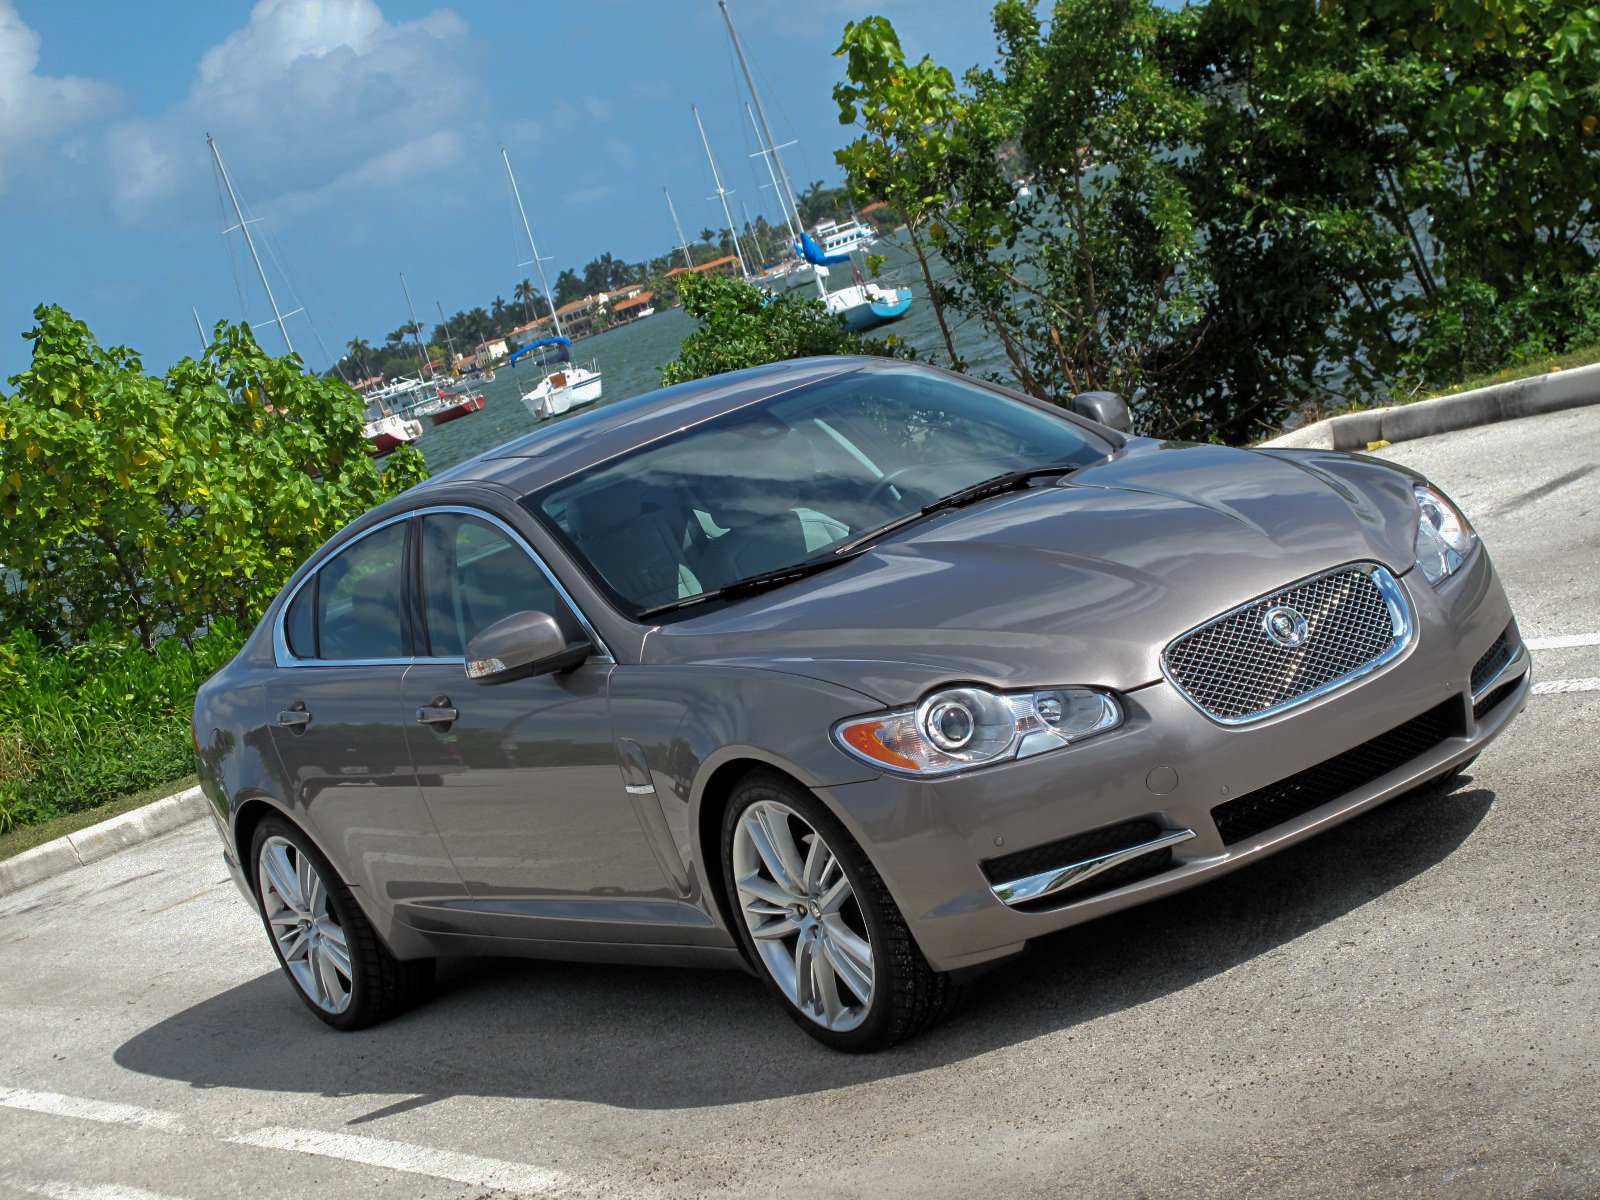 2009 jaguar xf picture 271667 car review top speed. Black Bedroom Furniture Sets. Home Design Ideas